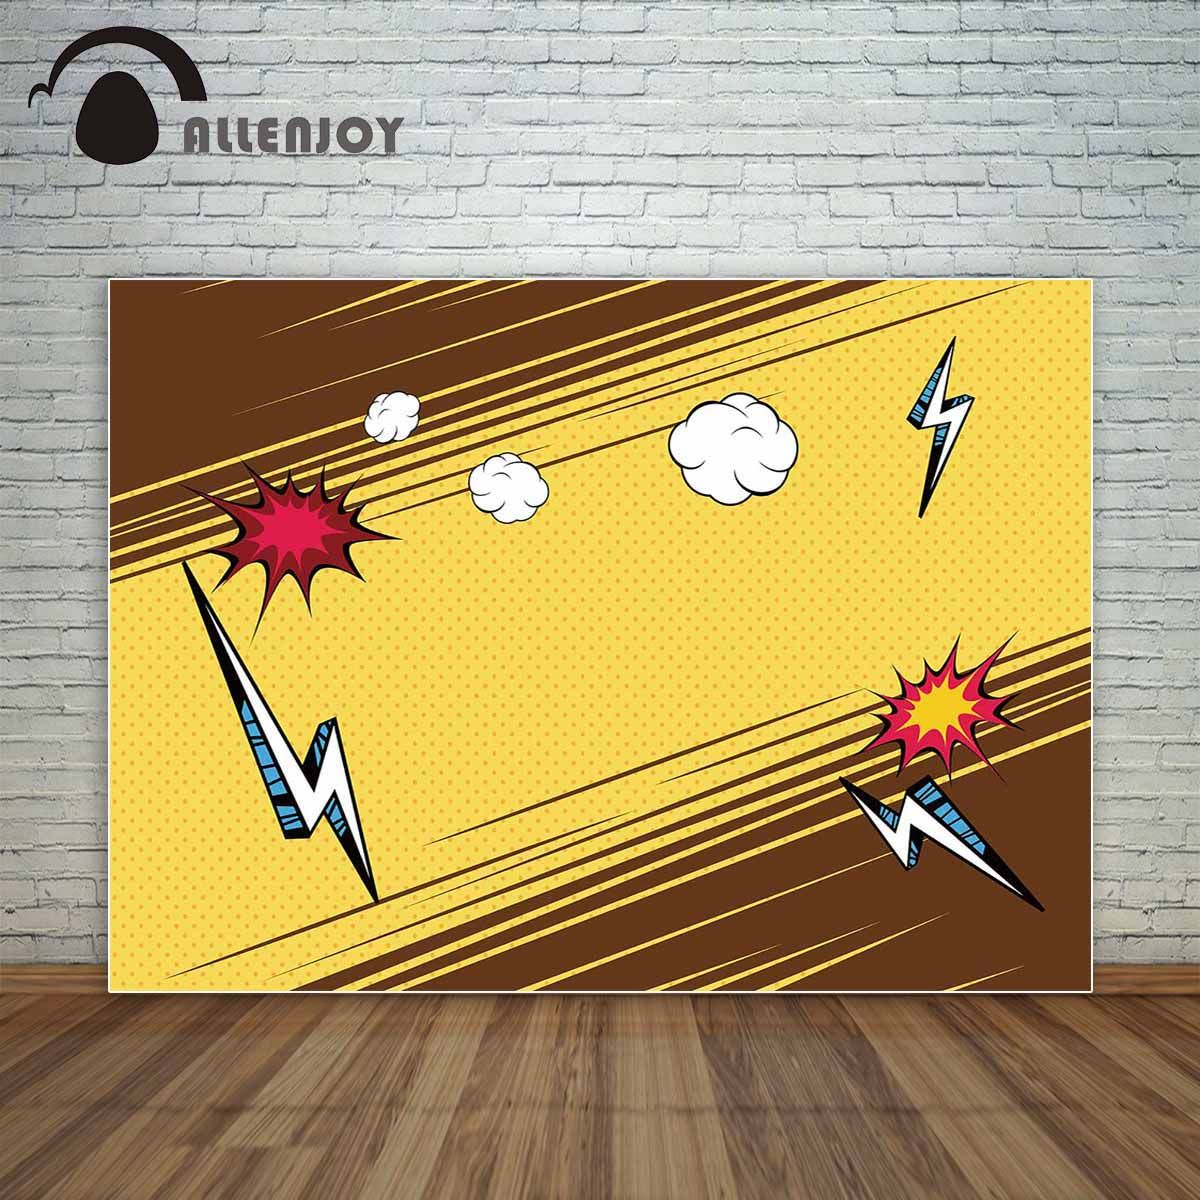 Allenjoy comic style backdrop with flash backdrop for